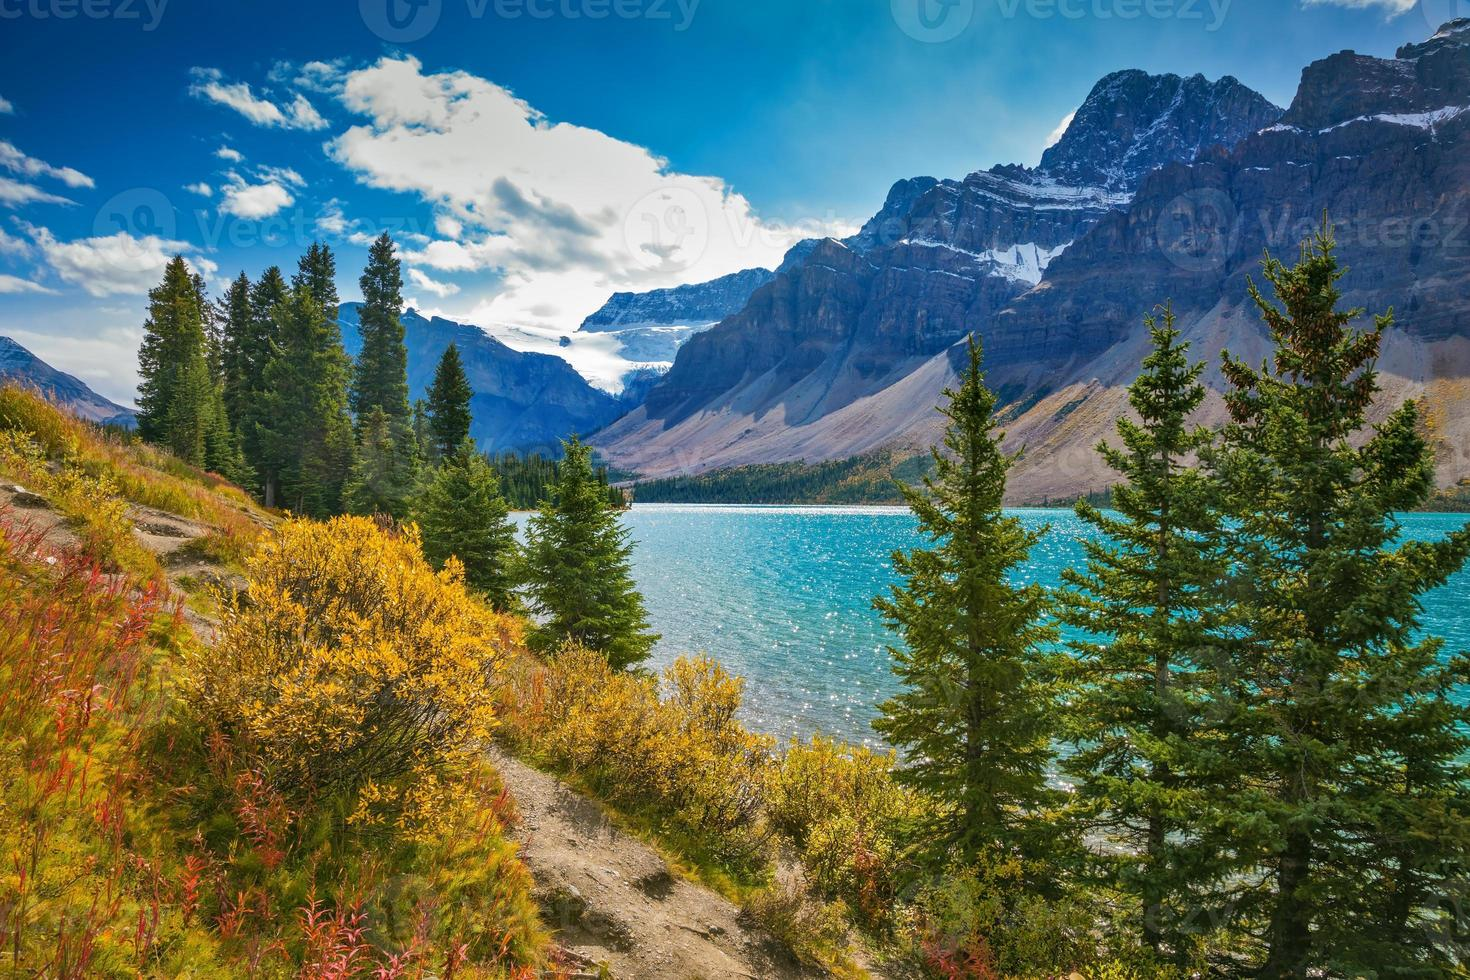 Banff National Park in the Canadian Rockies photo